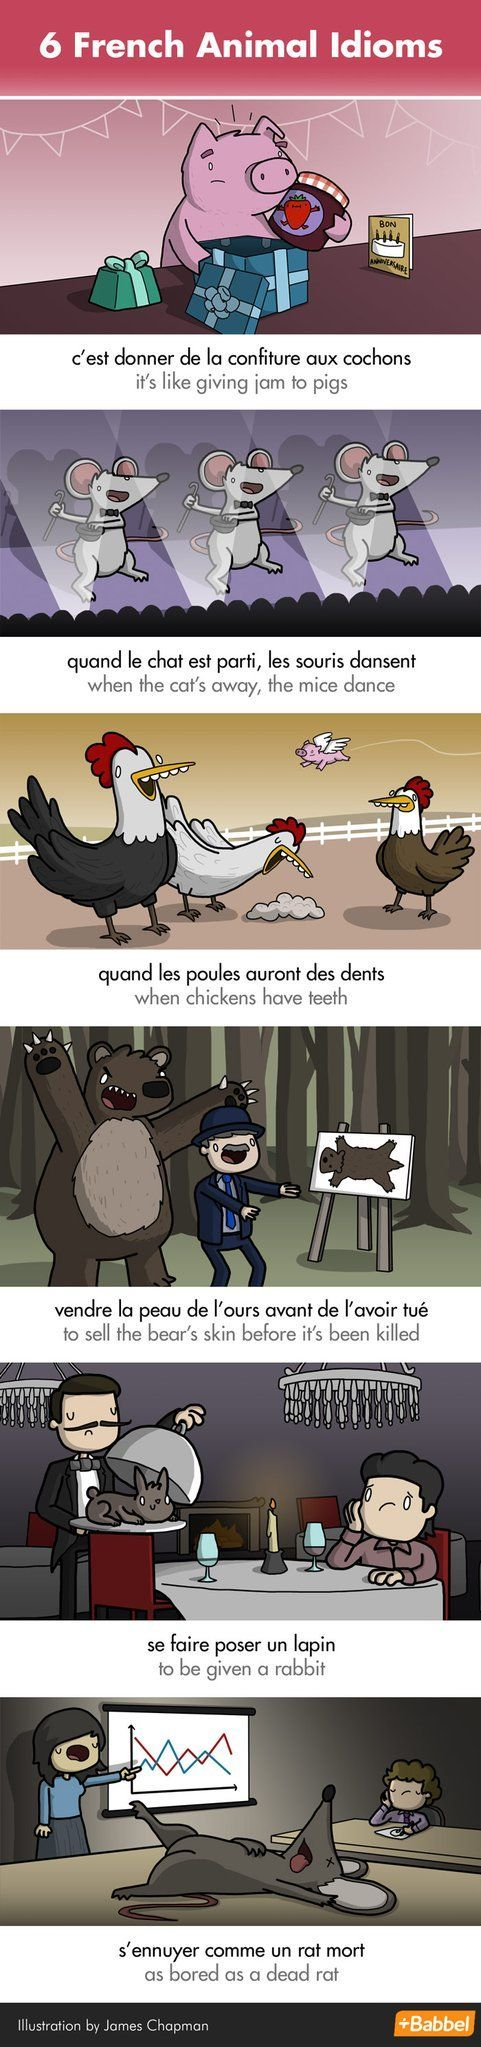 French idioms about animals.